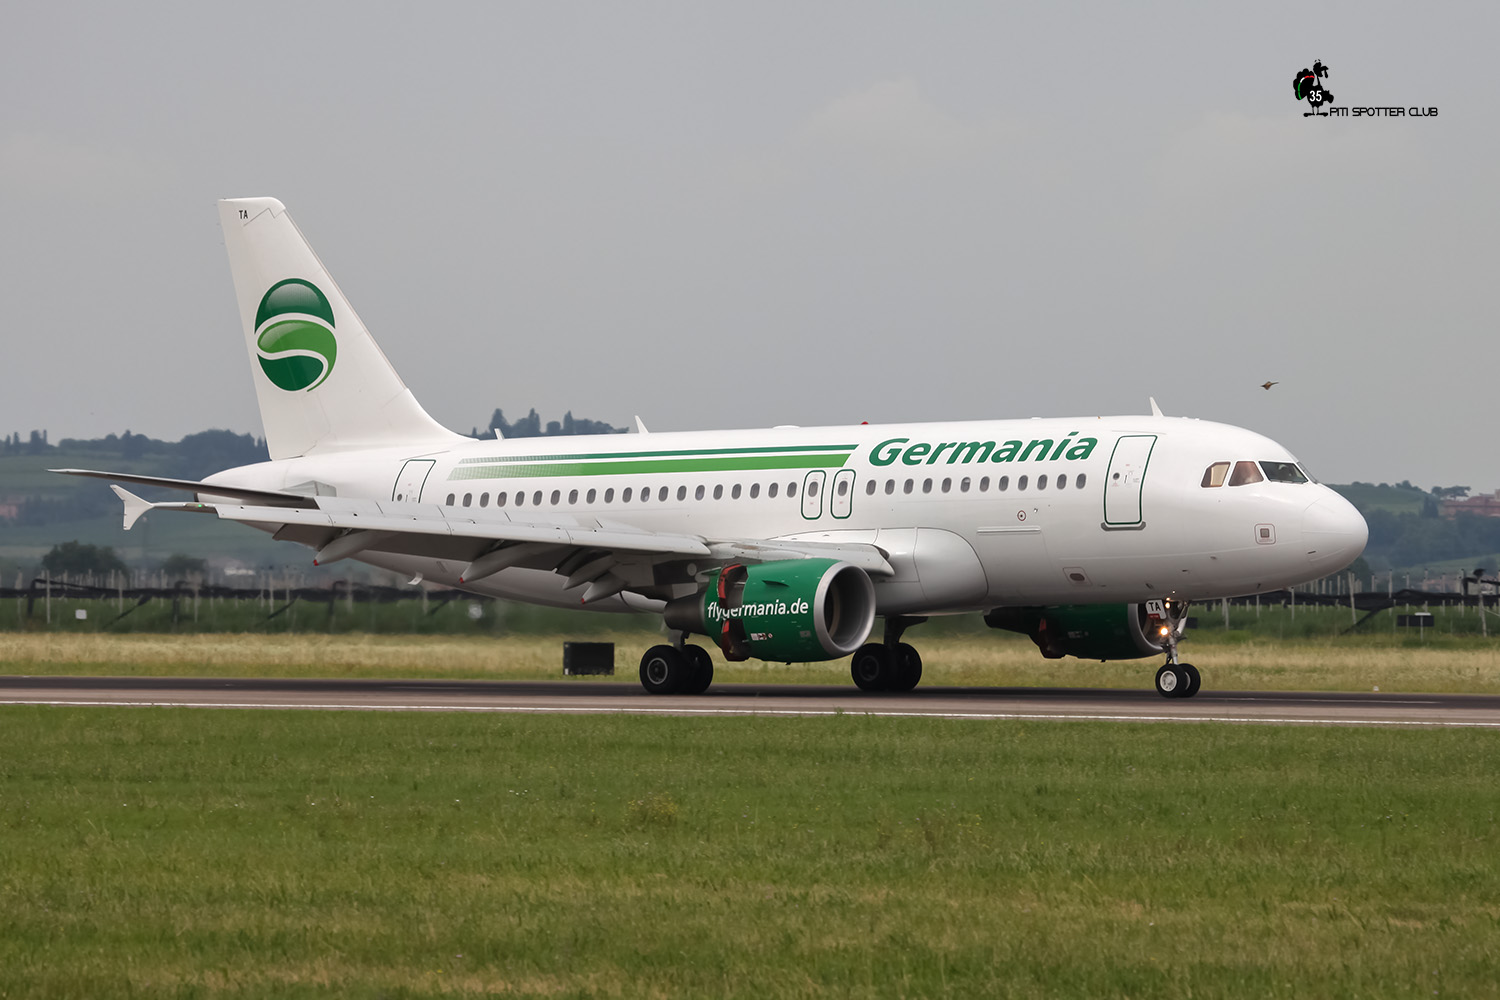 D-ASTA A319-112 4663 Germania Flug